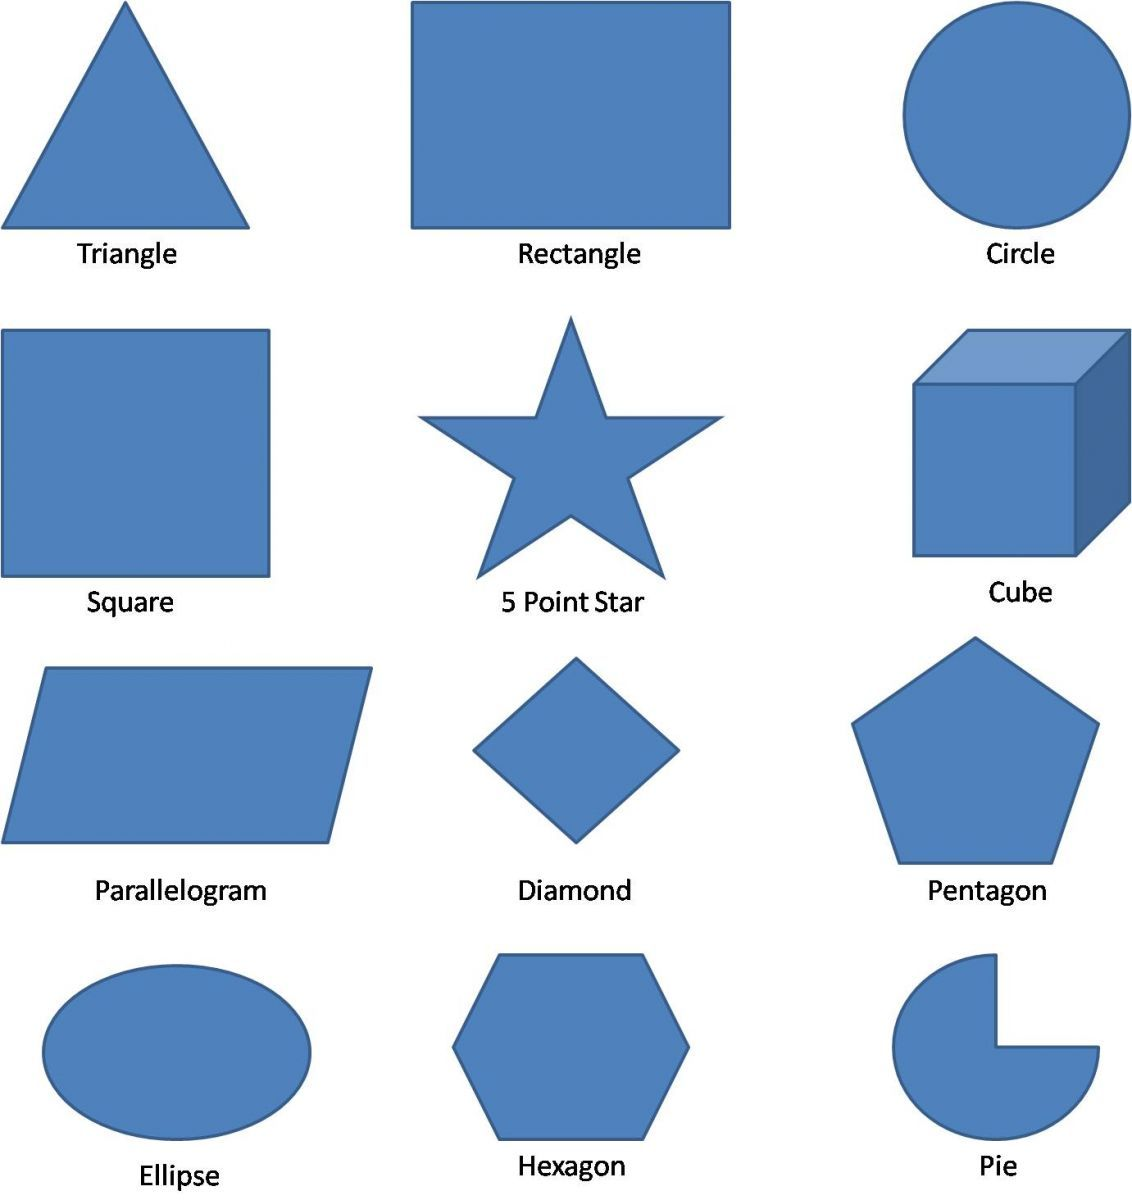 small resolution of Geometry worksheets for grade 3 kids for math olympiad prepartions. Learn  the basic shapes like square